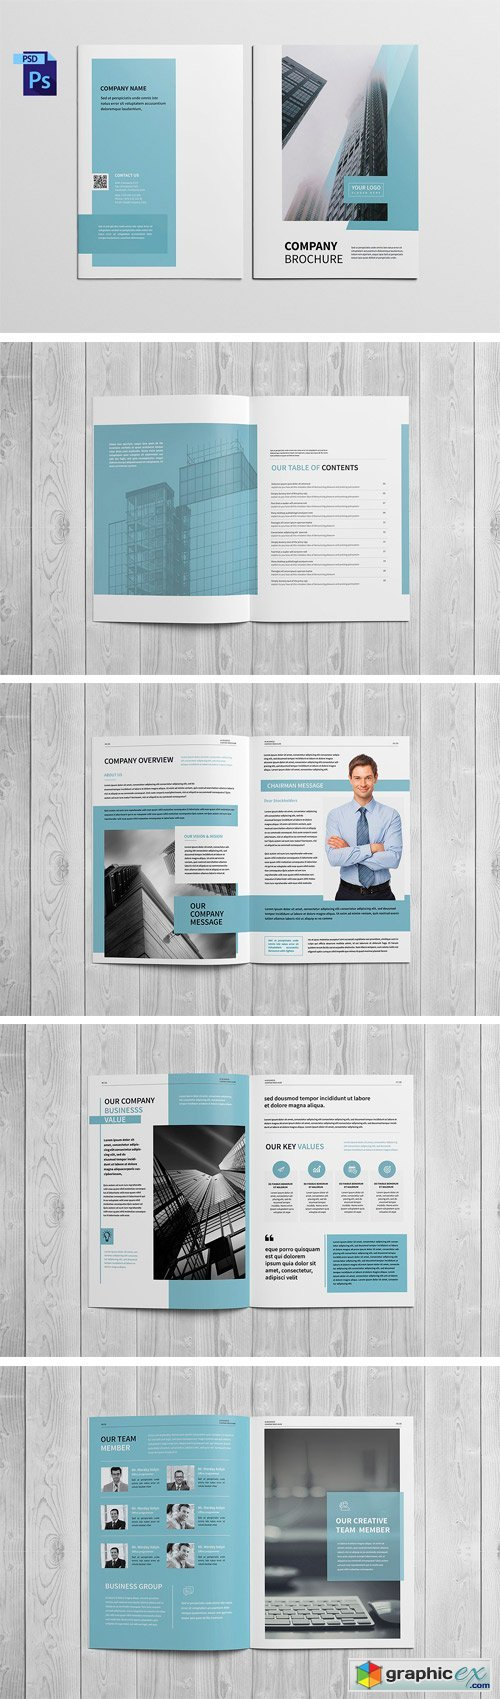 Company Profile Brochure 1709746